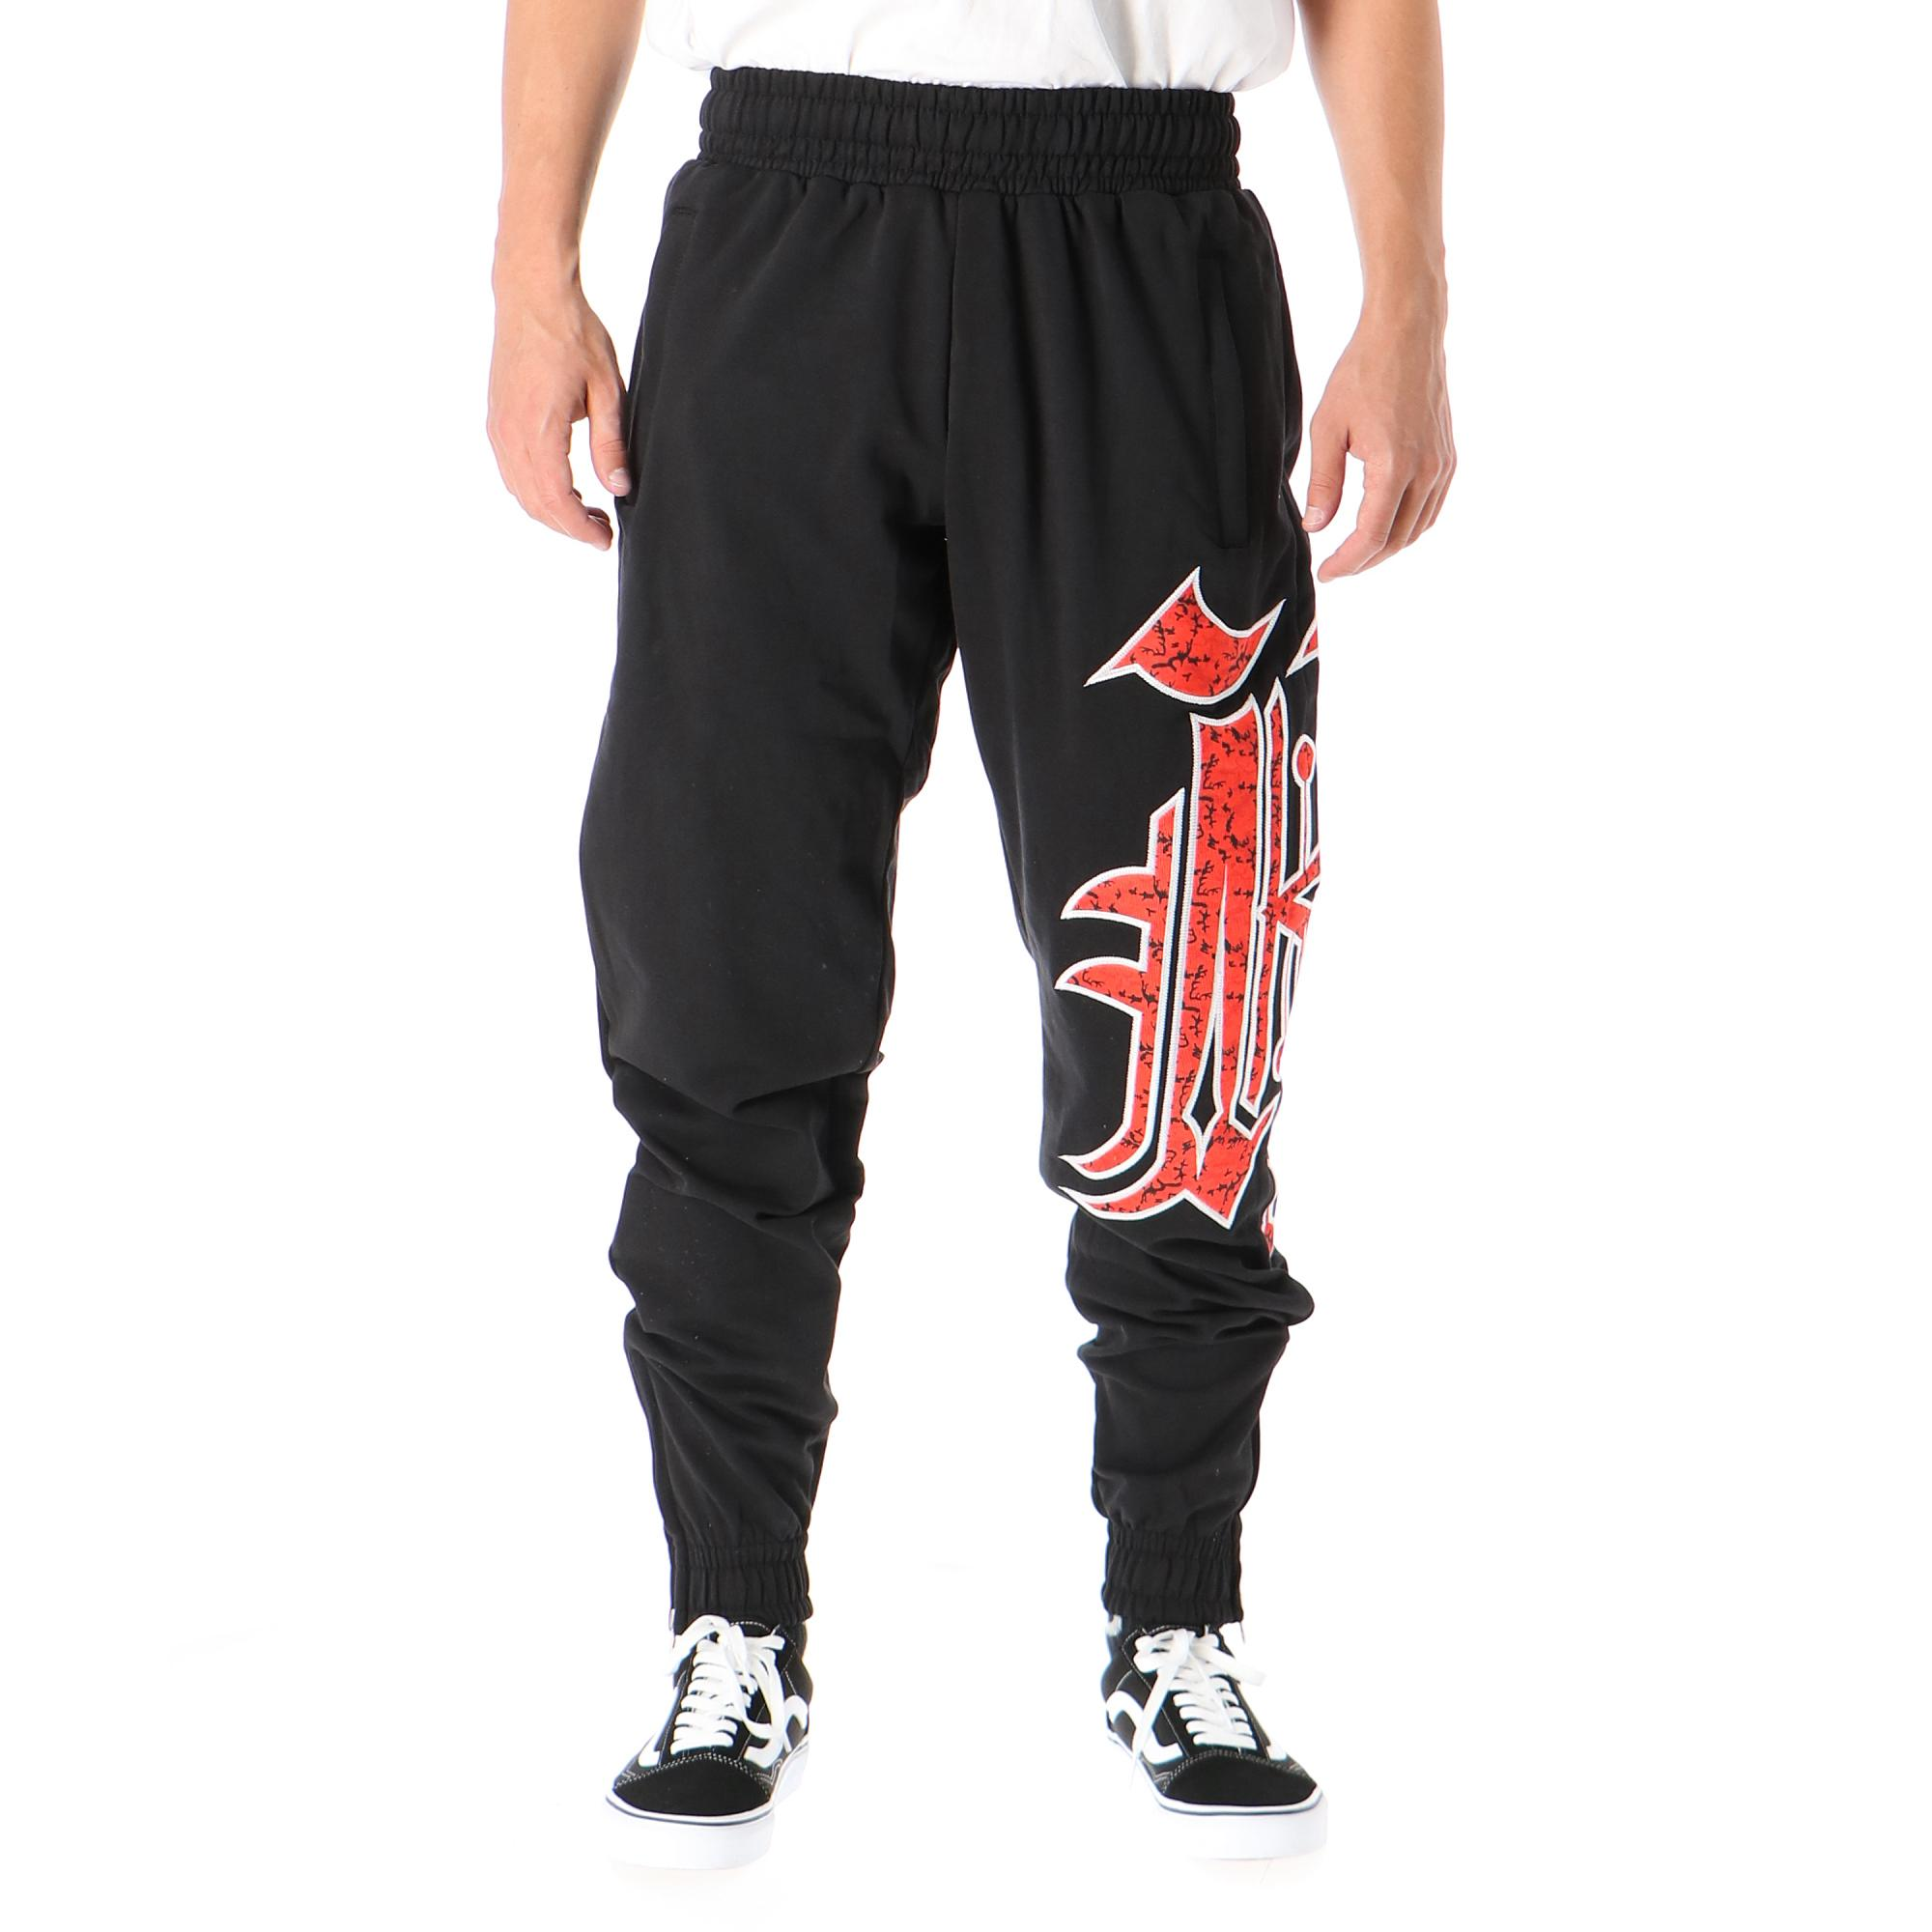 Kali King Kk Pant Black red